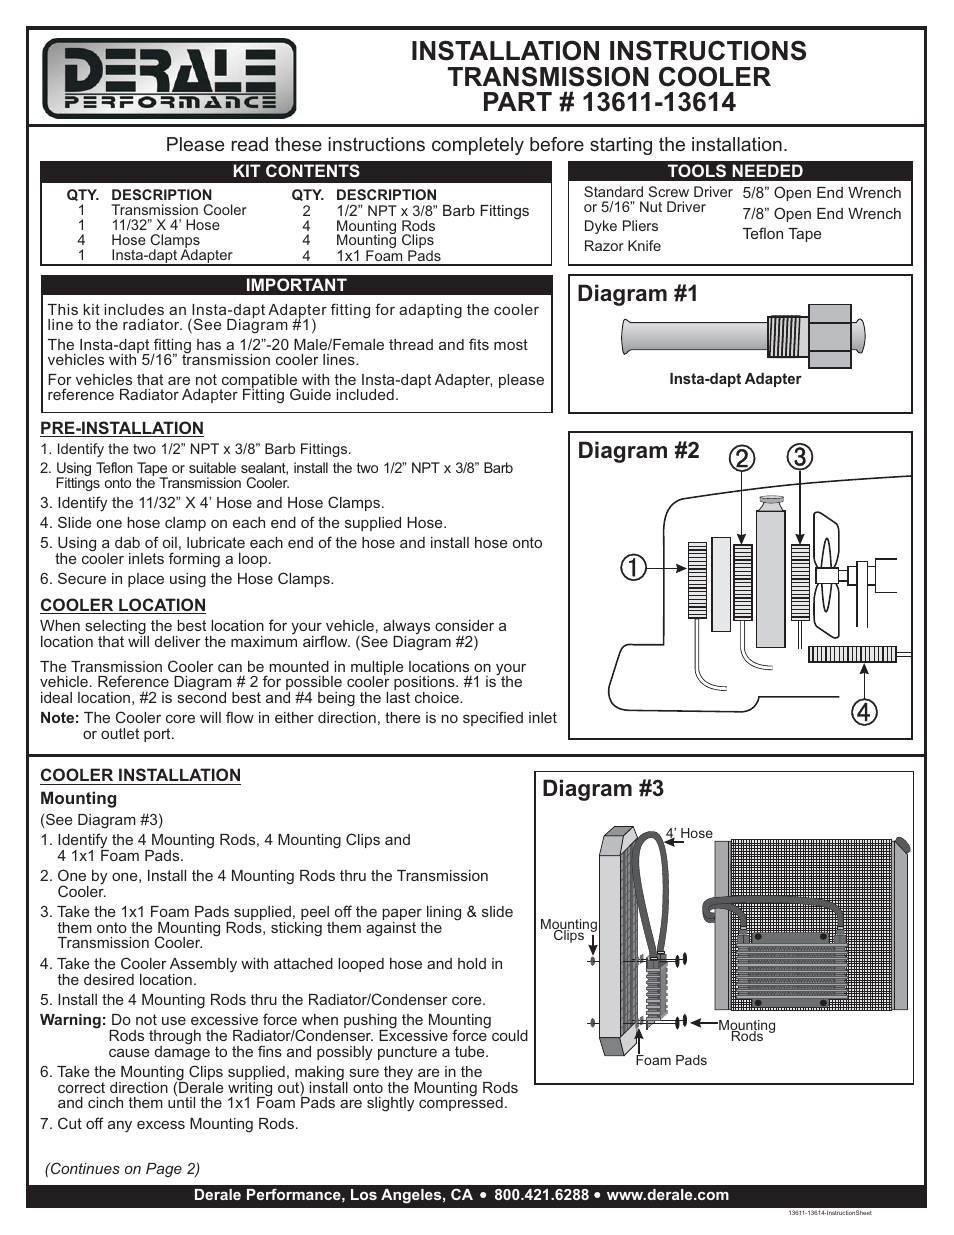 [QNCB_7524]  Derale Performance 5 Row Series 9000 Plate & Fin Transmission Cooler Kit  User Manual | 3 pages | Derale Oil Cooler Wiring Diagram |  | Manuals Directory